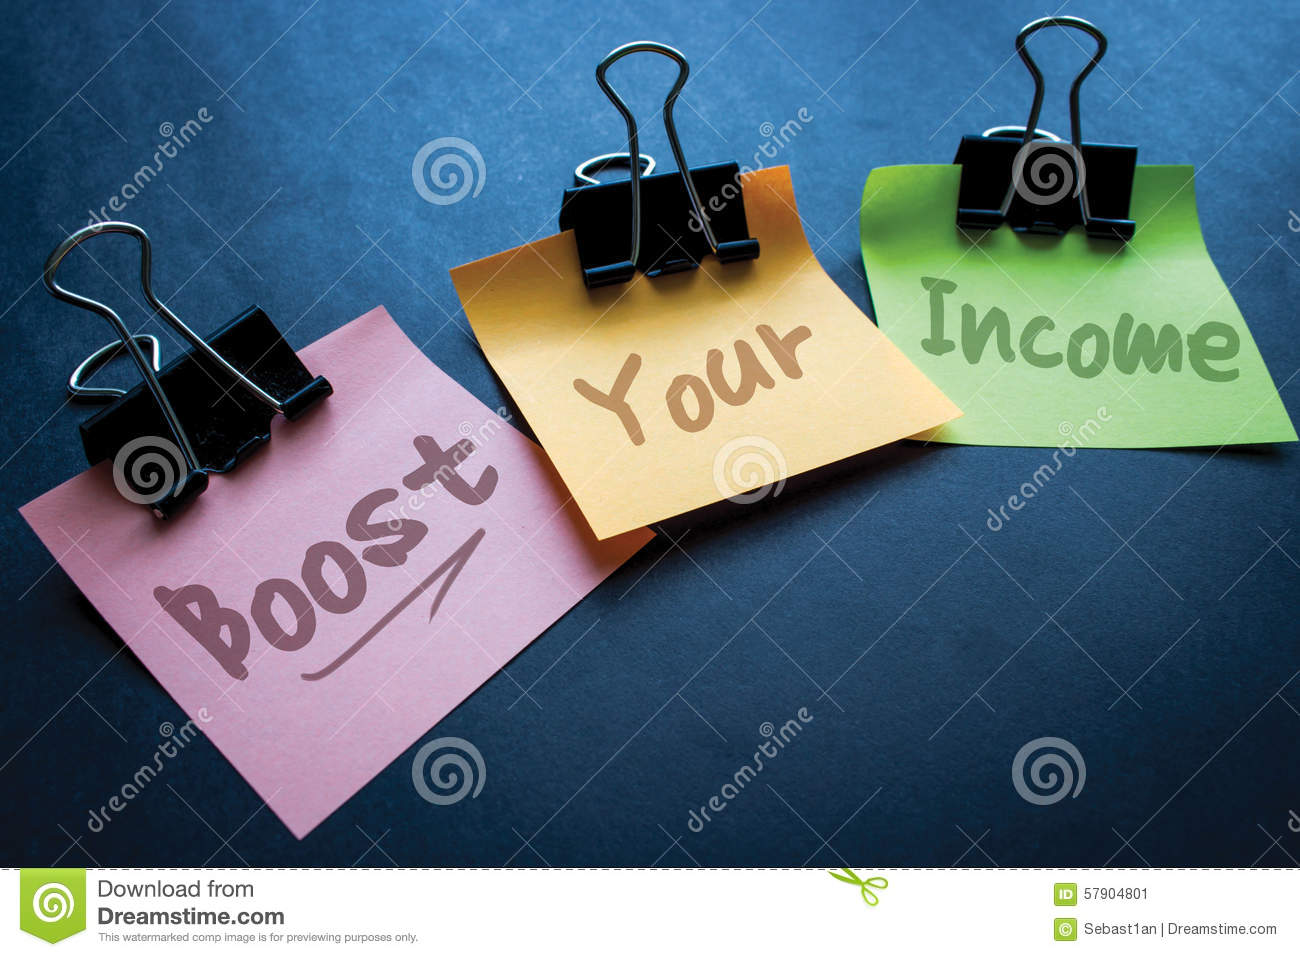 Boost your Income